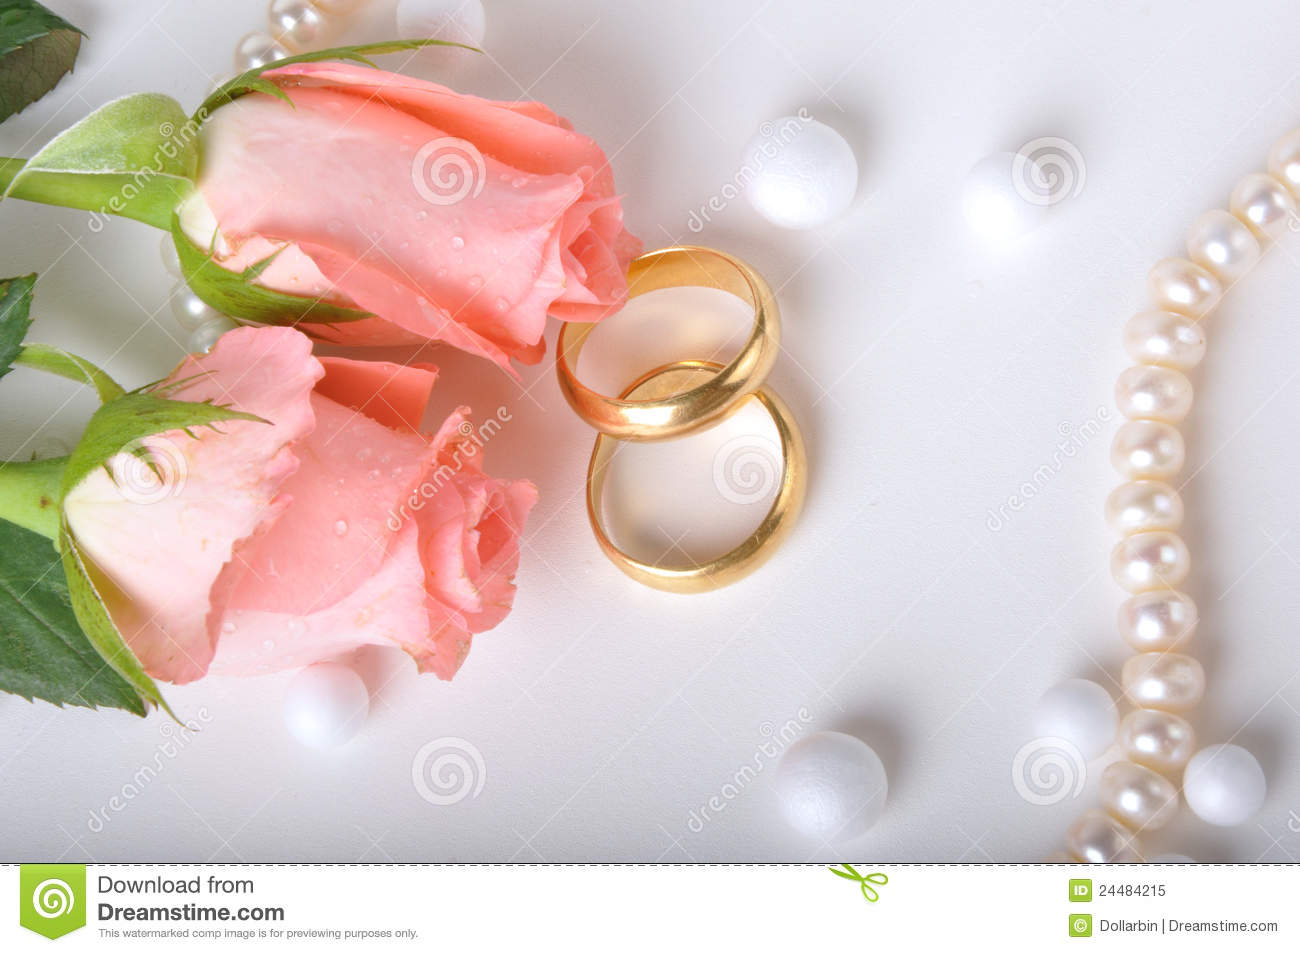 wedding ring rose stock image image of married gold 24484215